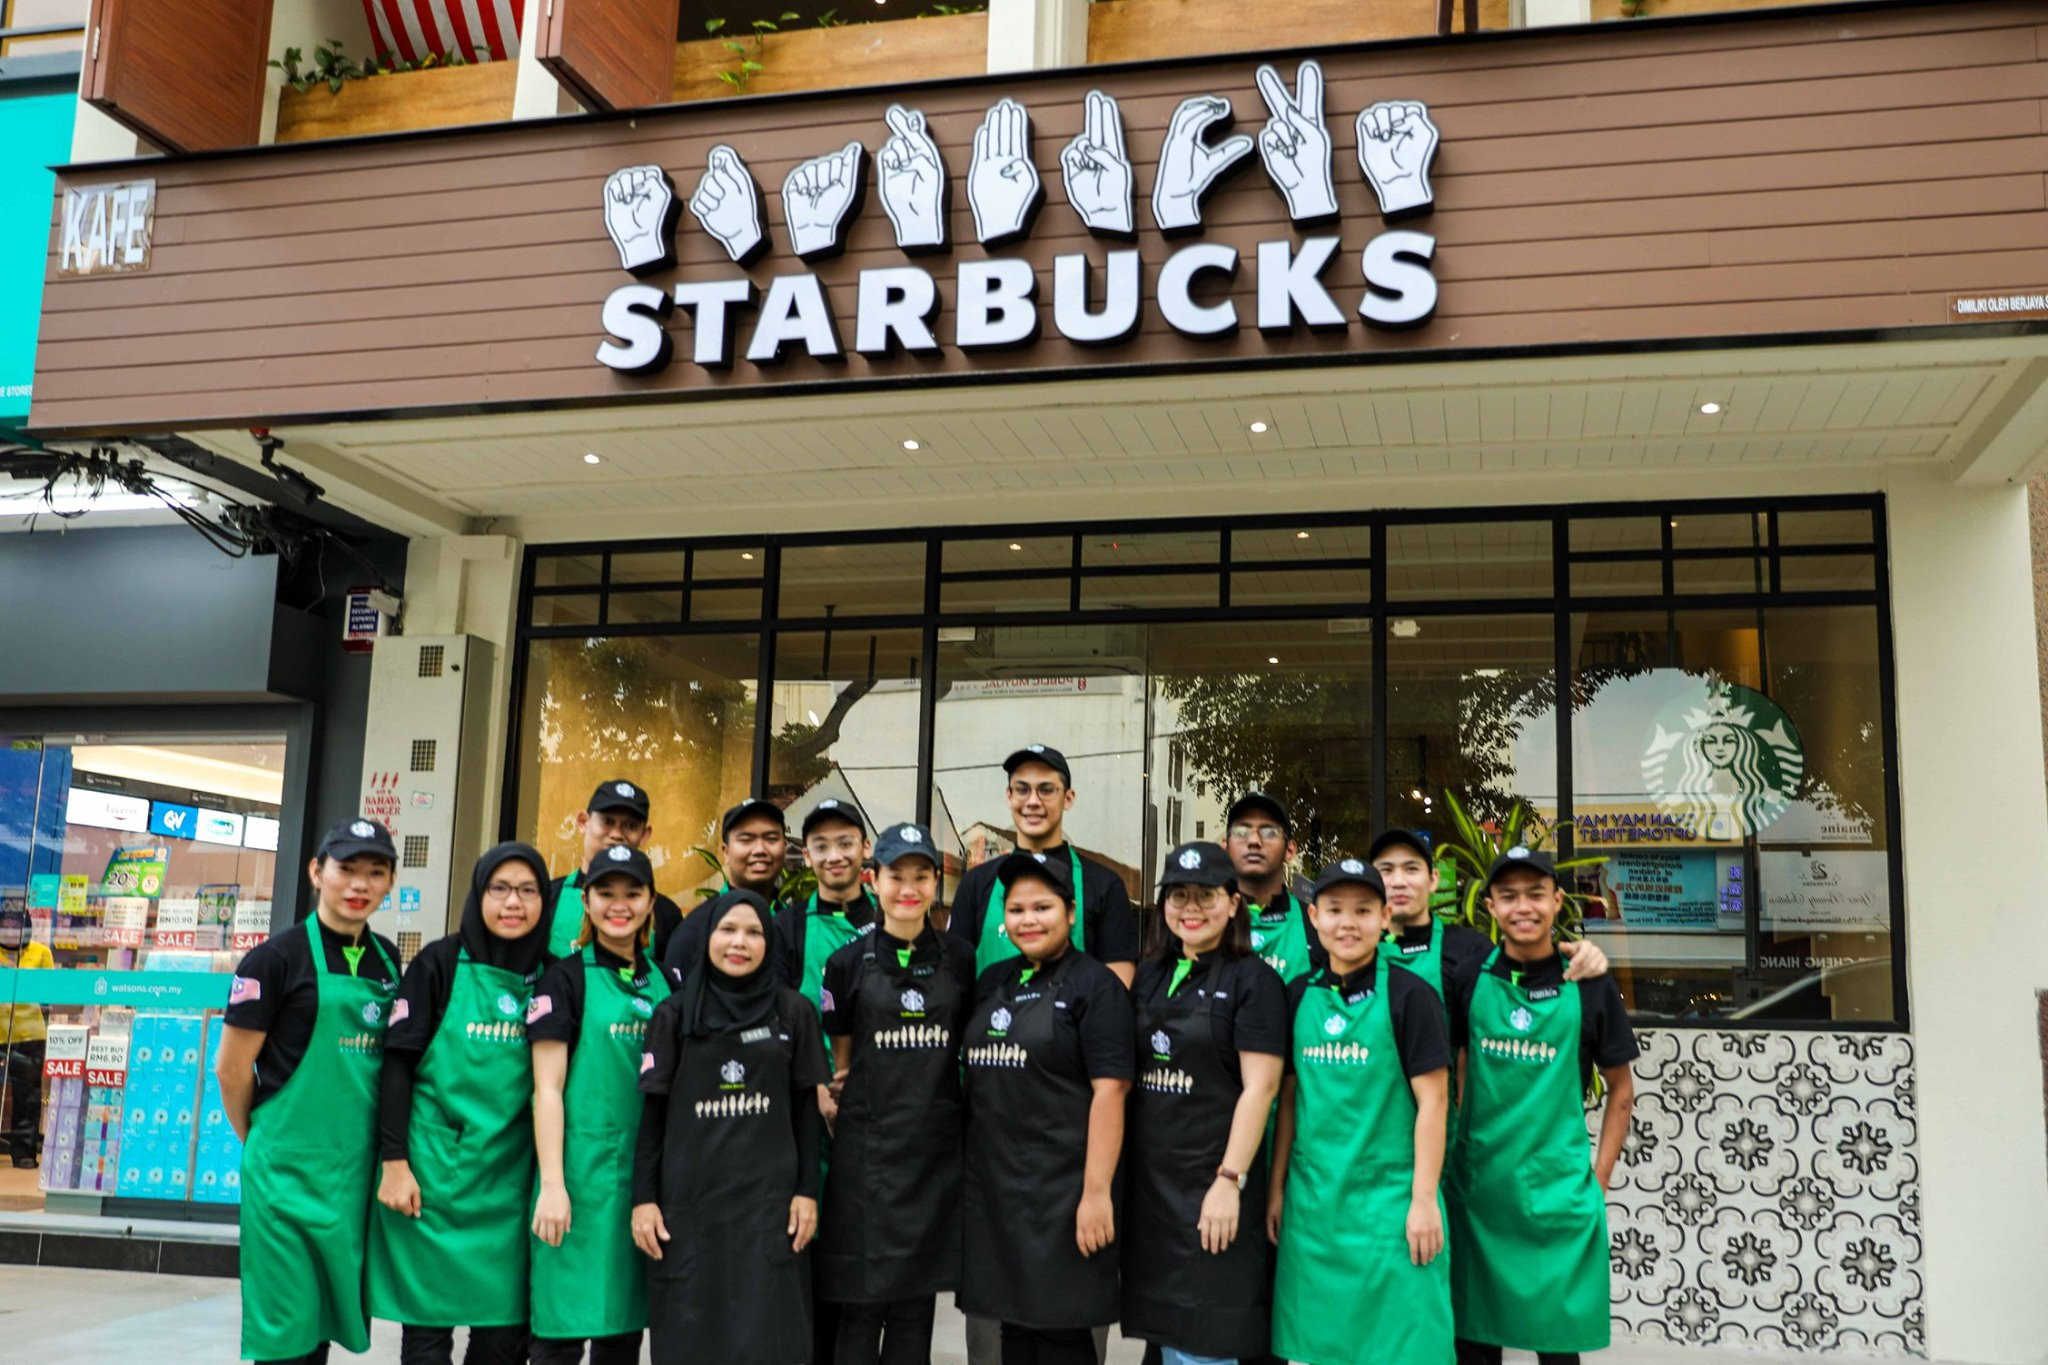 Starbucks staff posing outside the store